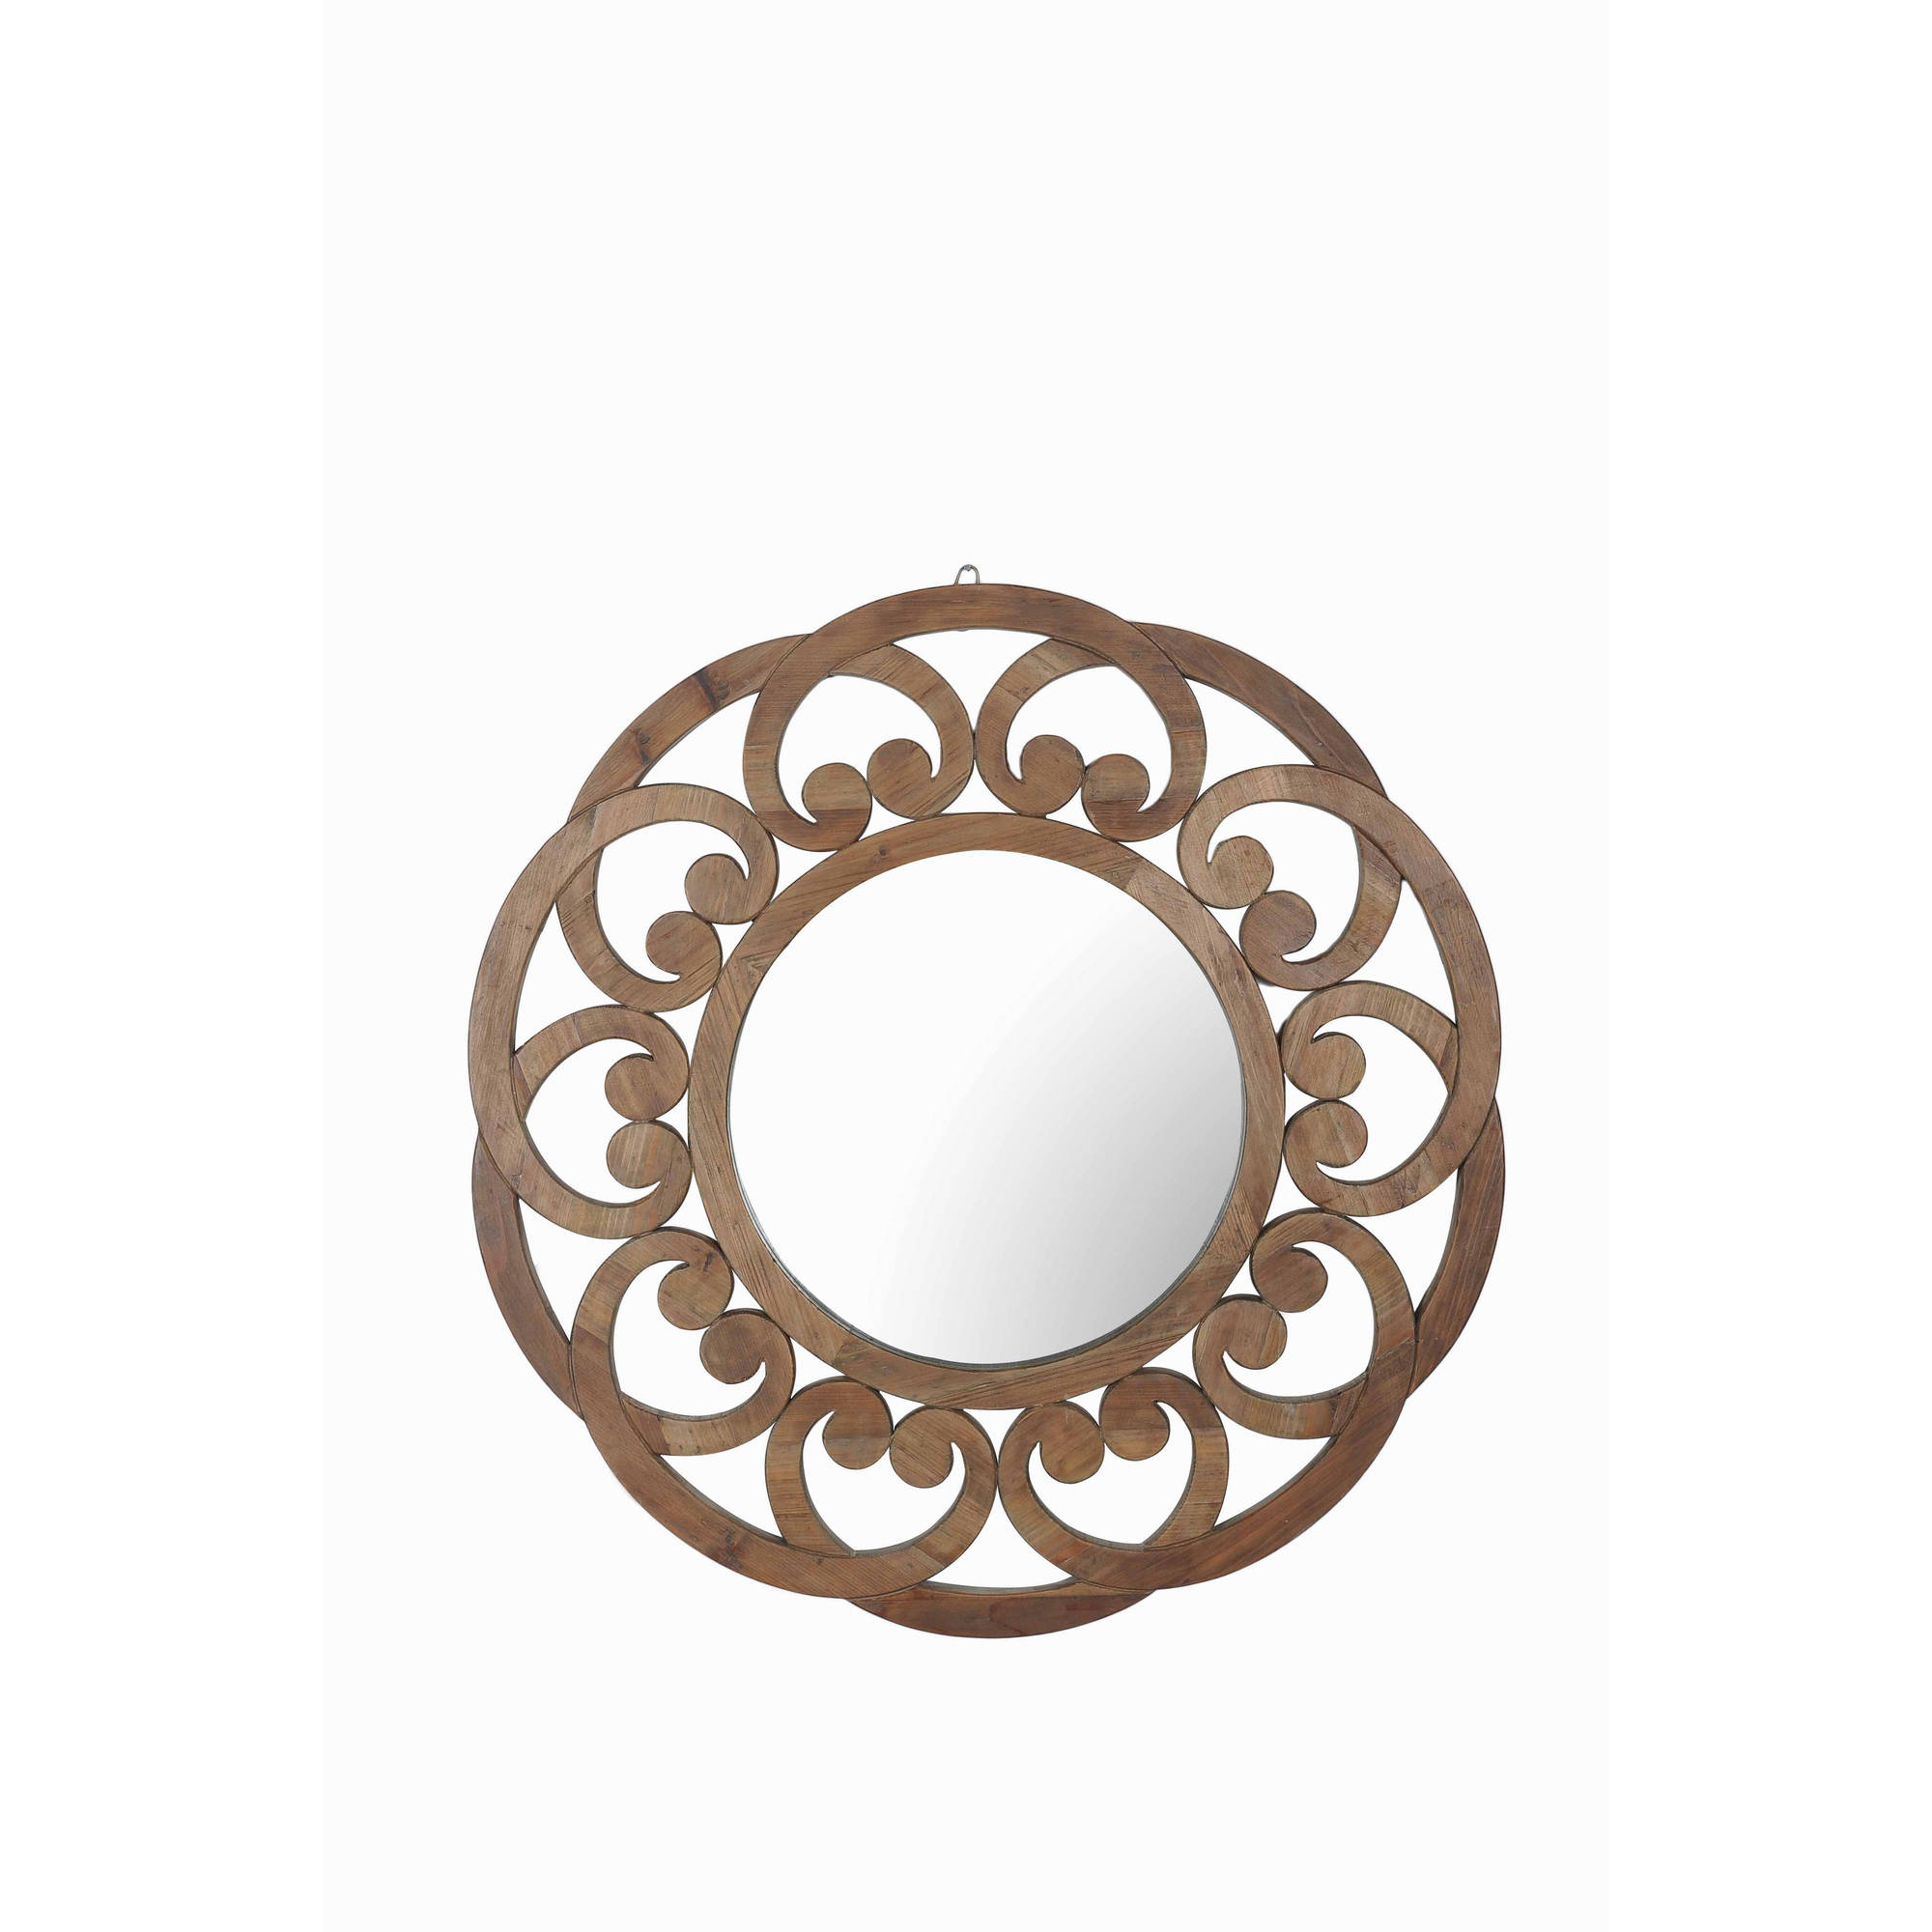 Sunjoy 130201010 Recycled Fir Wood Wide Border Round Mirror, 57""